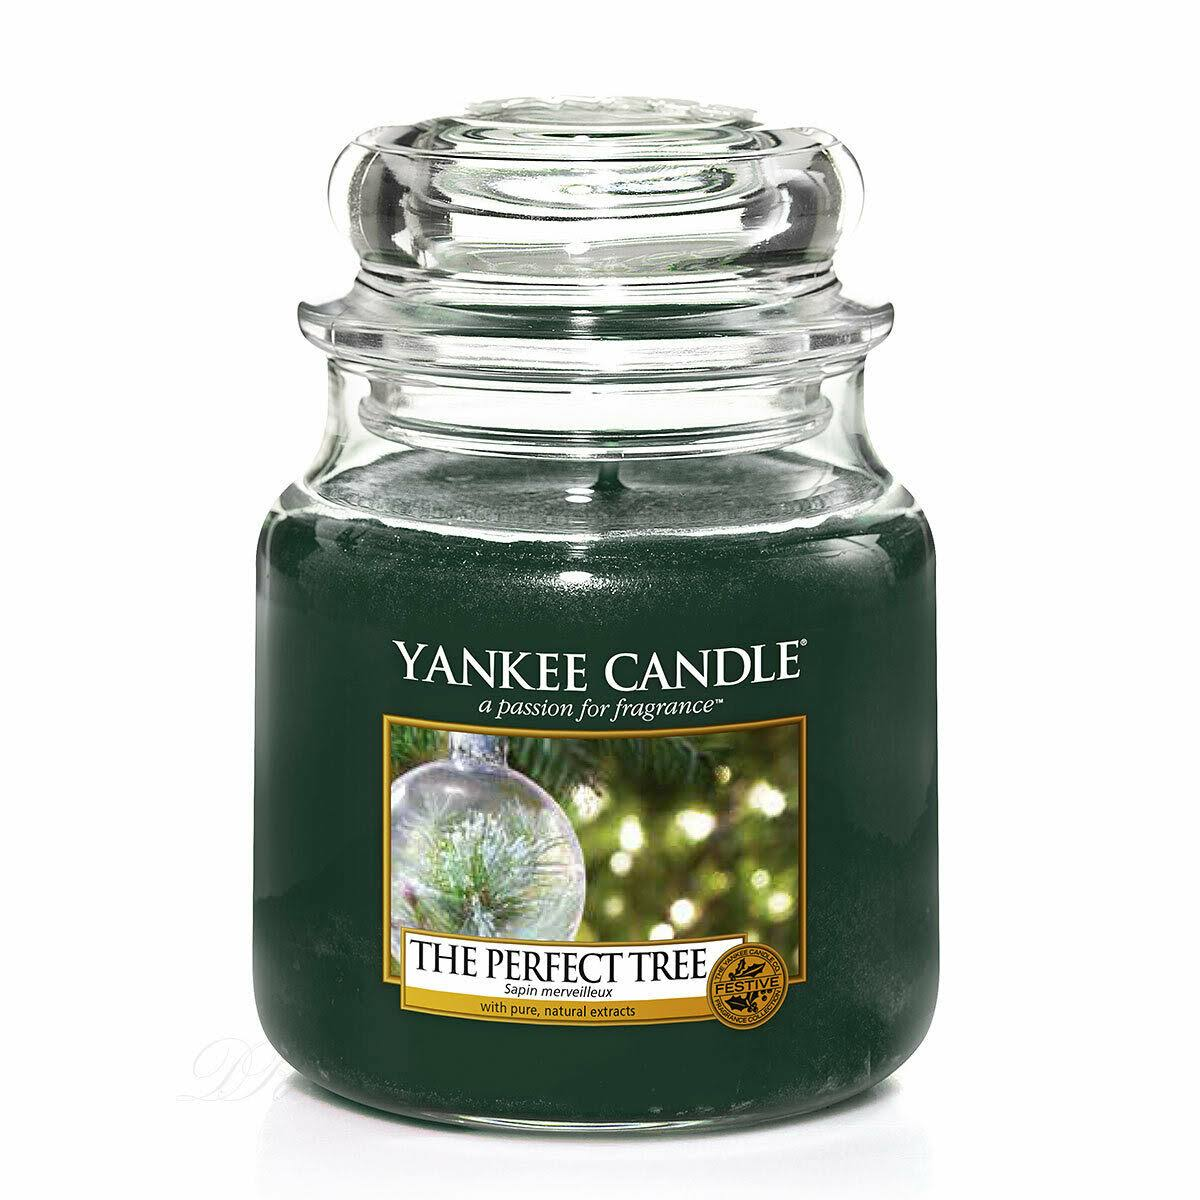 Yankee Candle Jar - The Perfect Tree, Medium